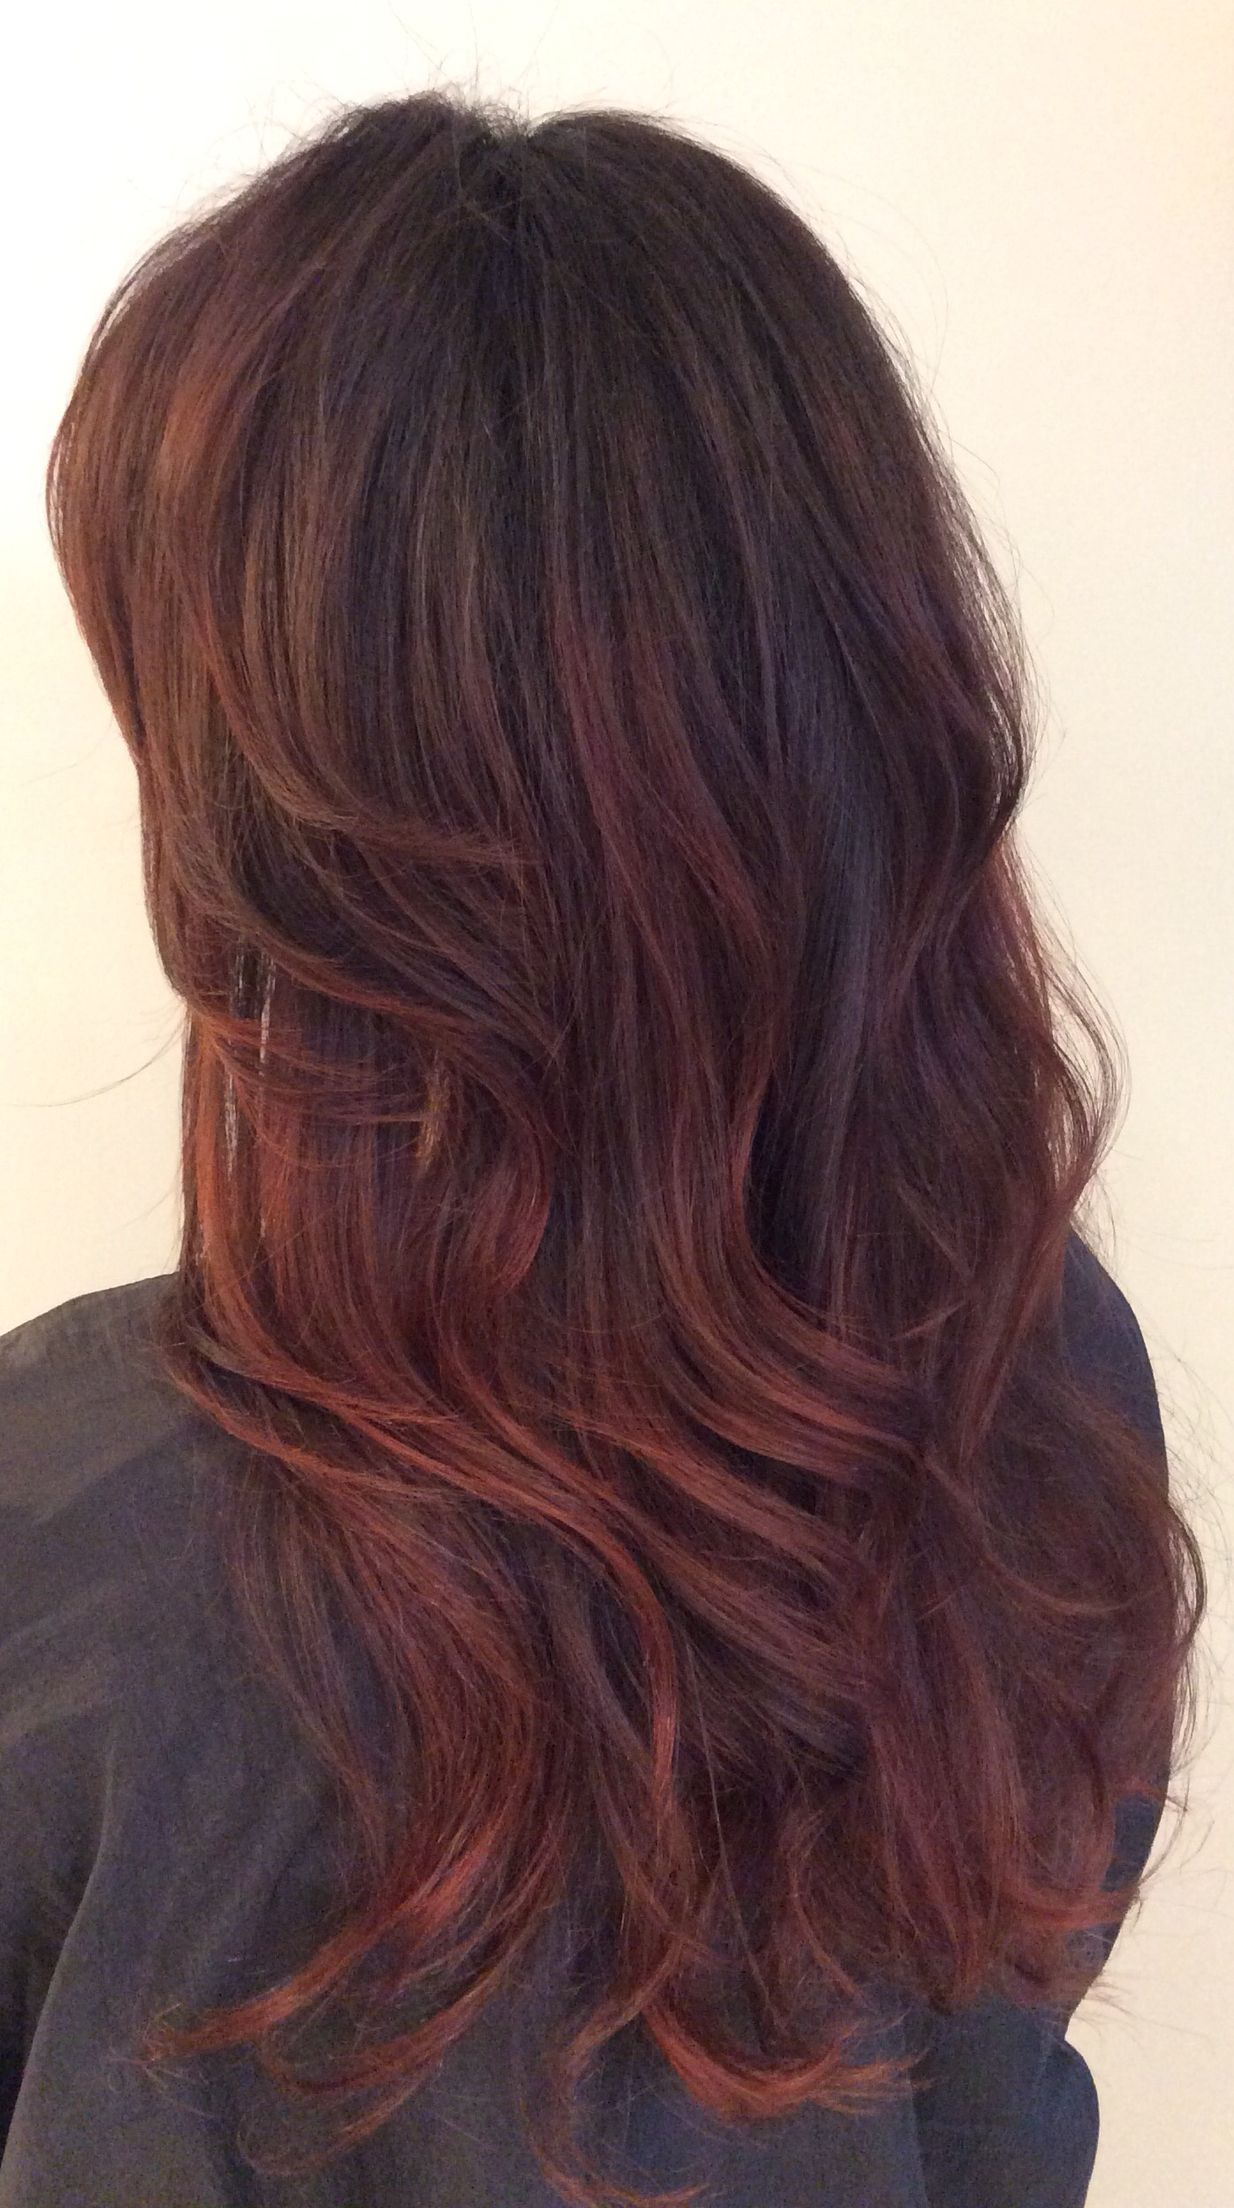 Brunette Hair With Dark Red Balayage Red Balayage Dark Red Balayage Brunette Balayage Hair